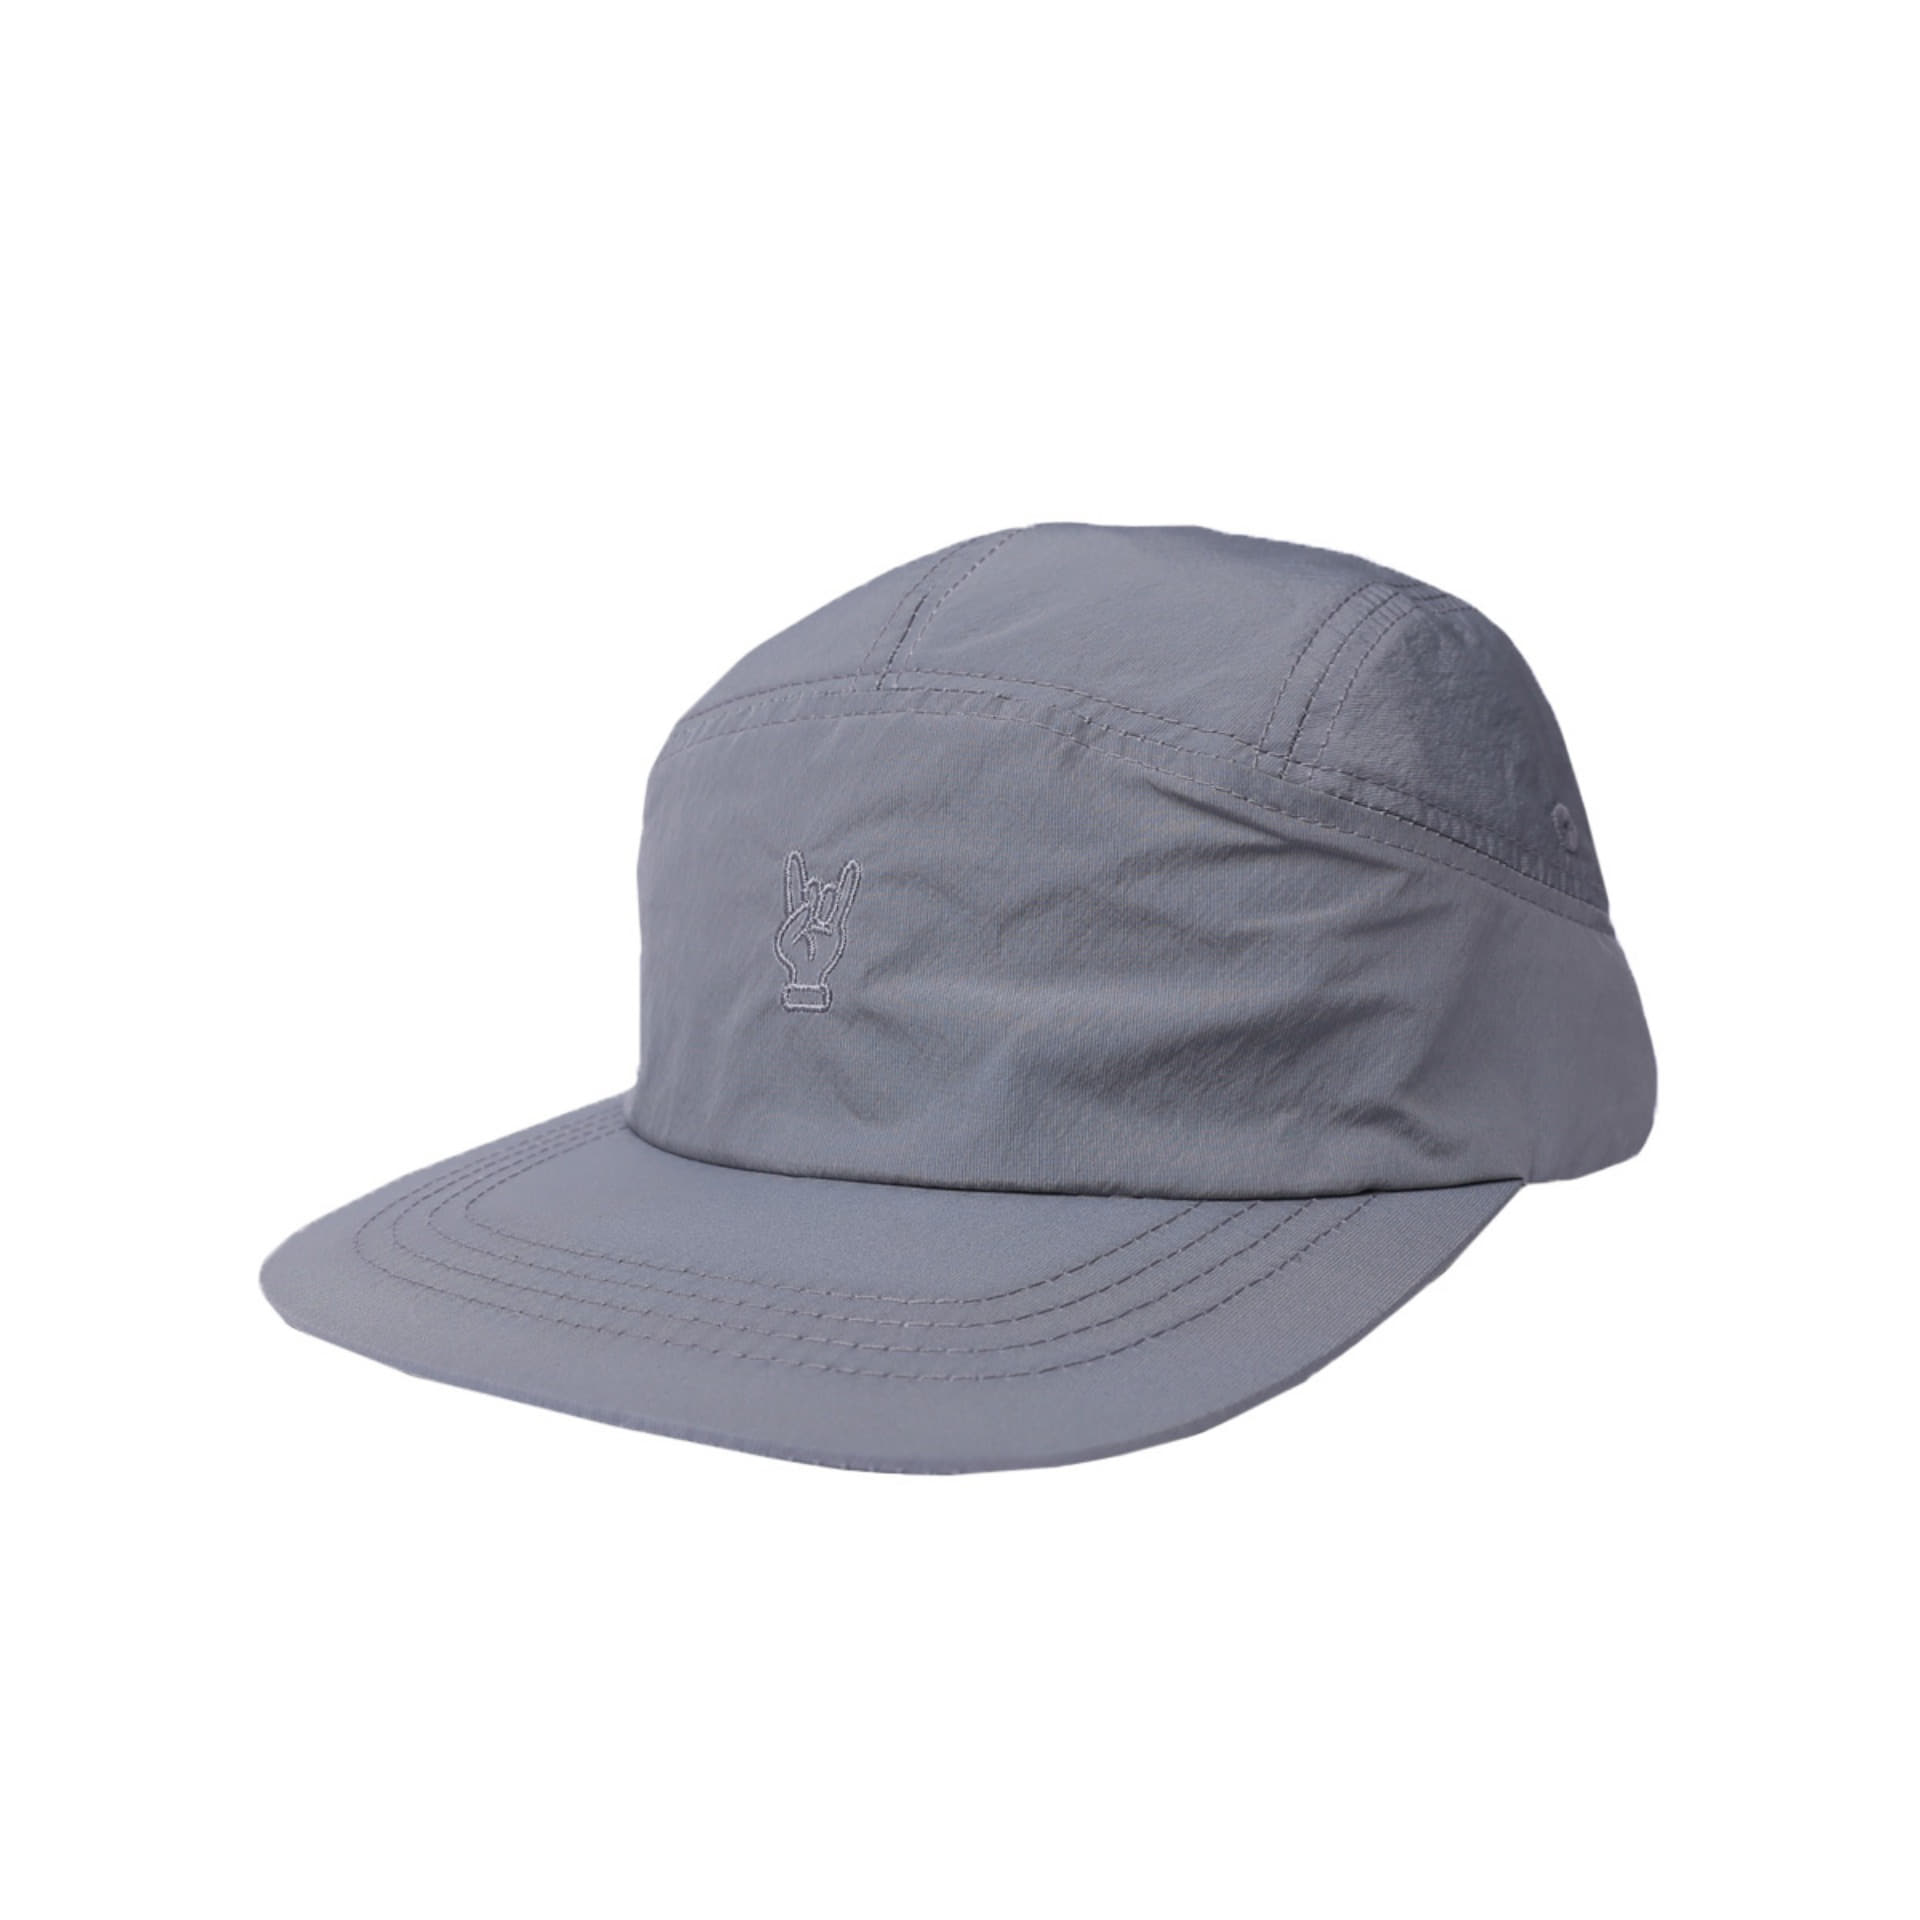 CAMPING CAP(LIGHT GREY)